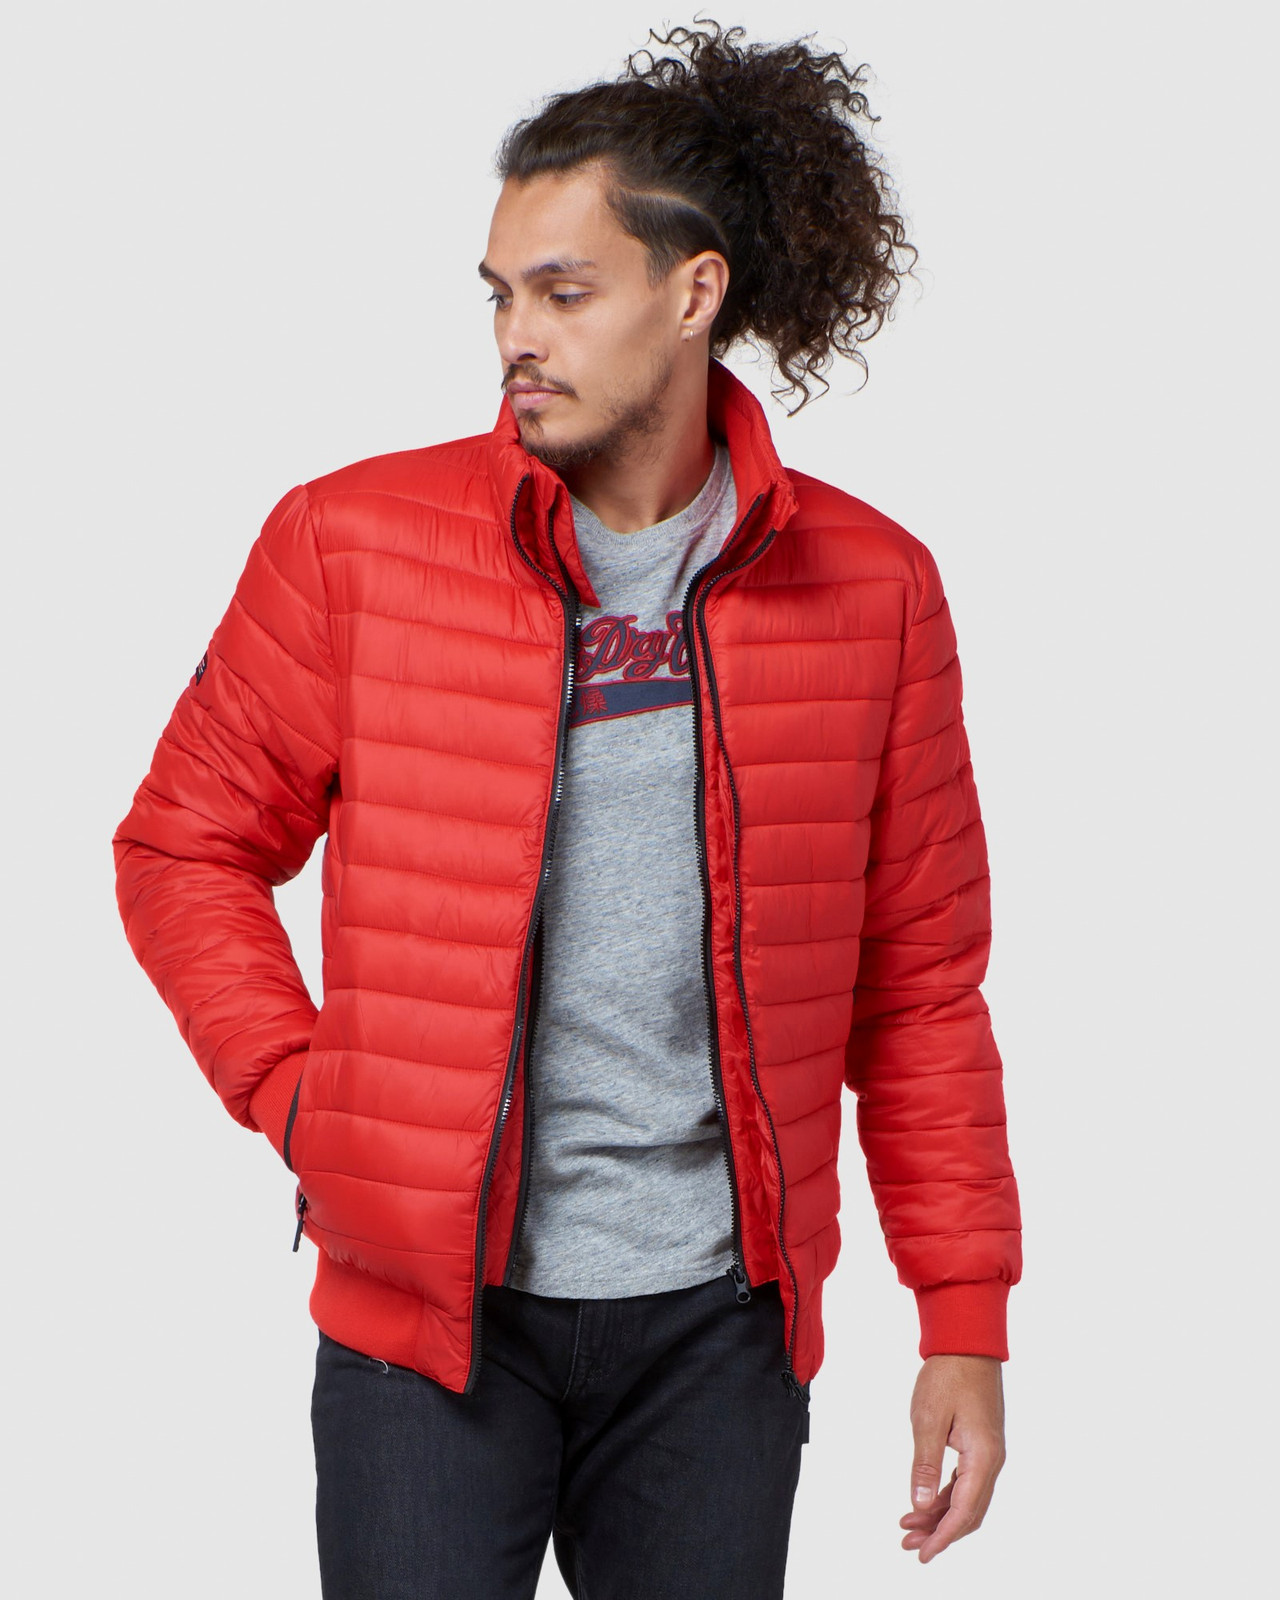 Superdry Mens FUJI BOMBER Red Puffer Jackets 1